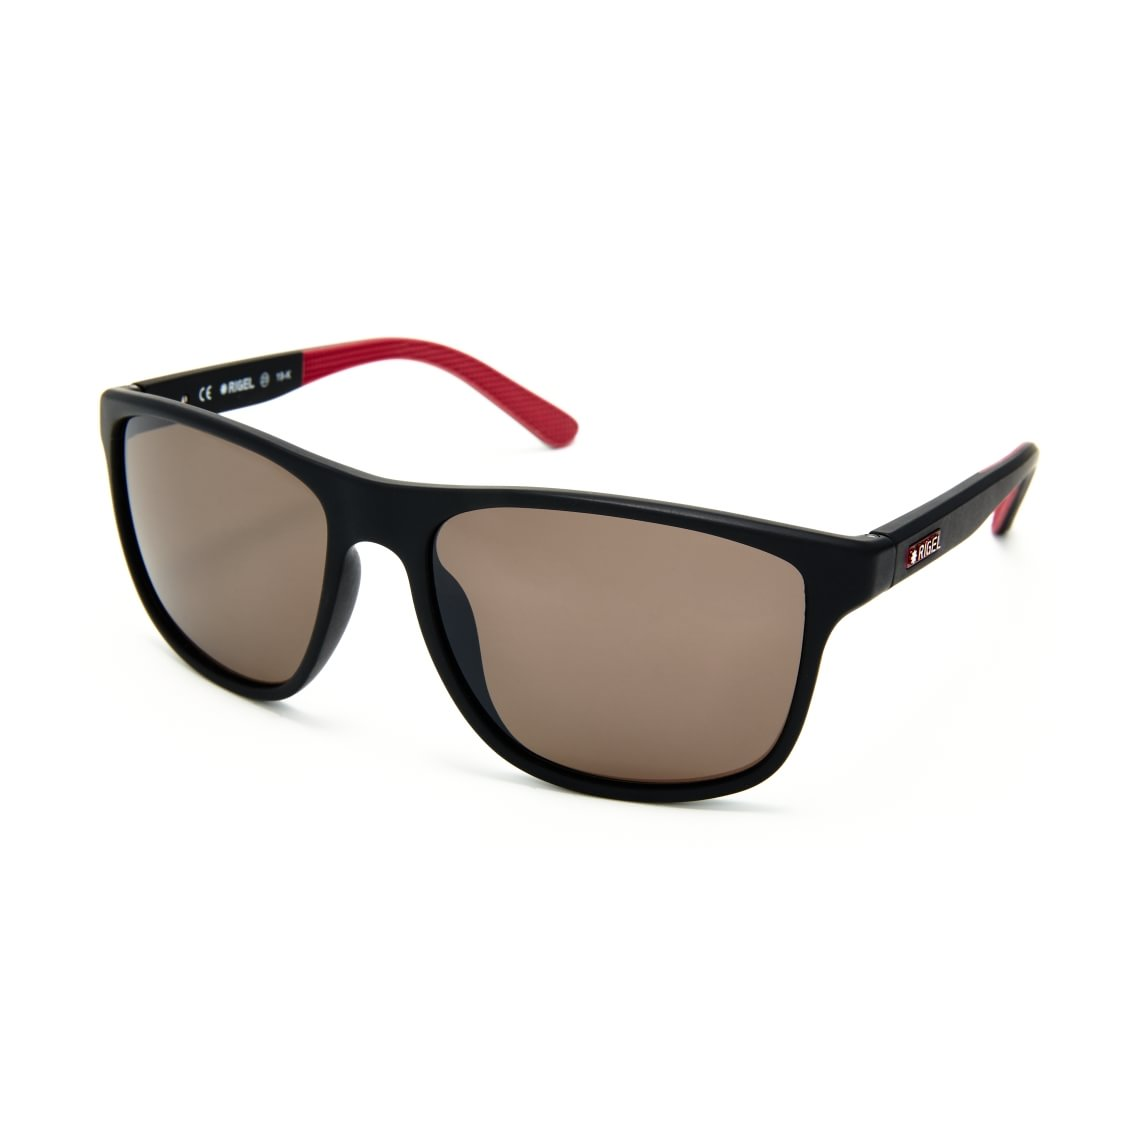 RIGEL Polarized Brown Stellar C40.1 5817